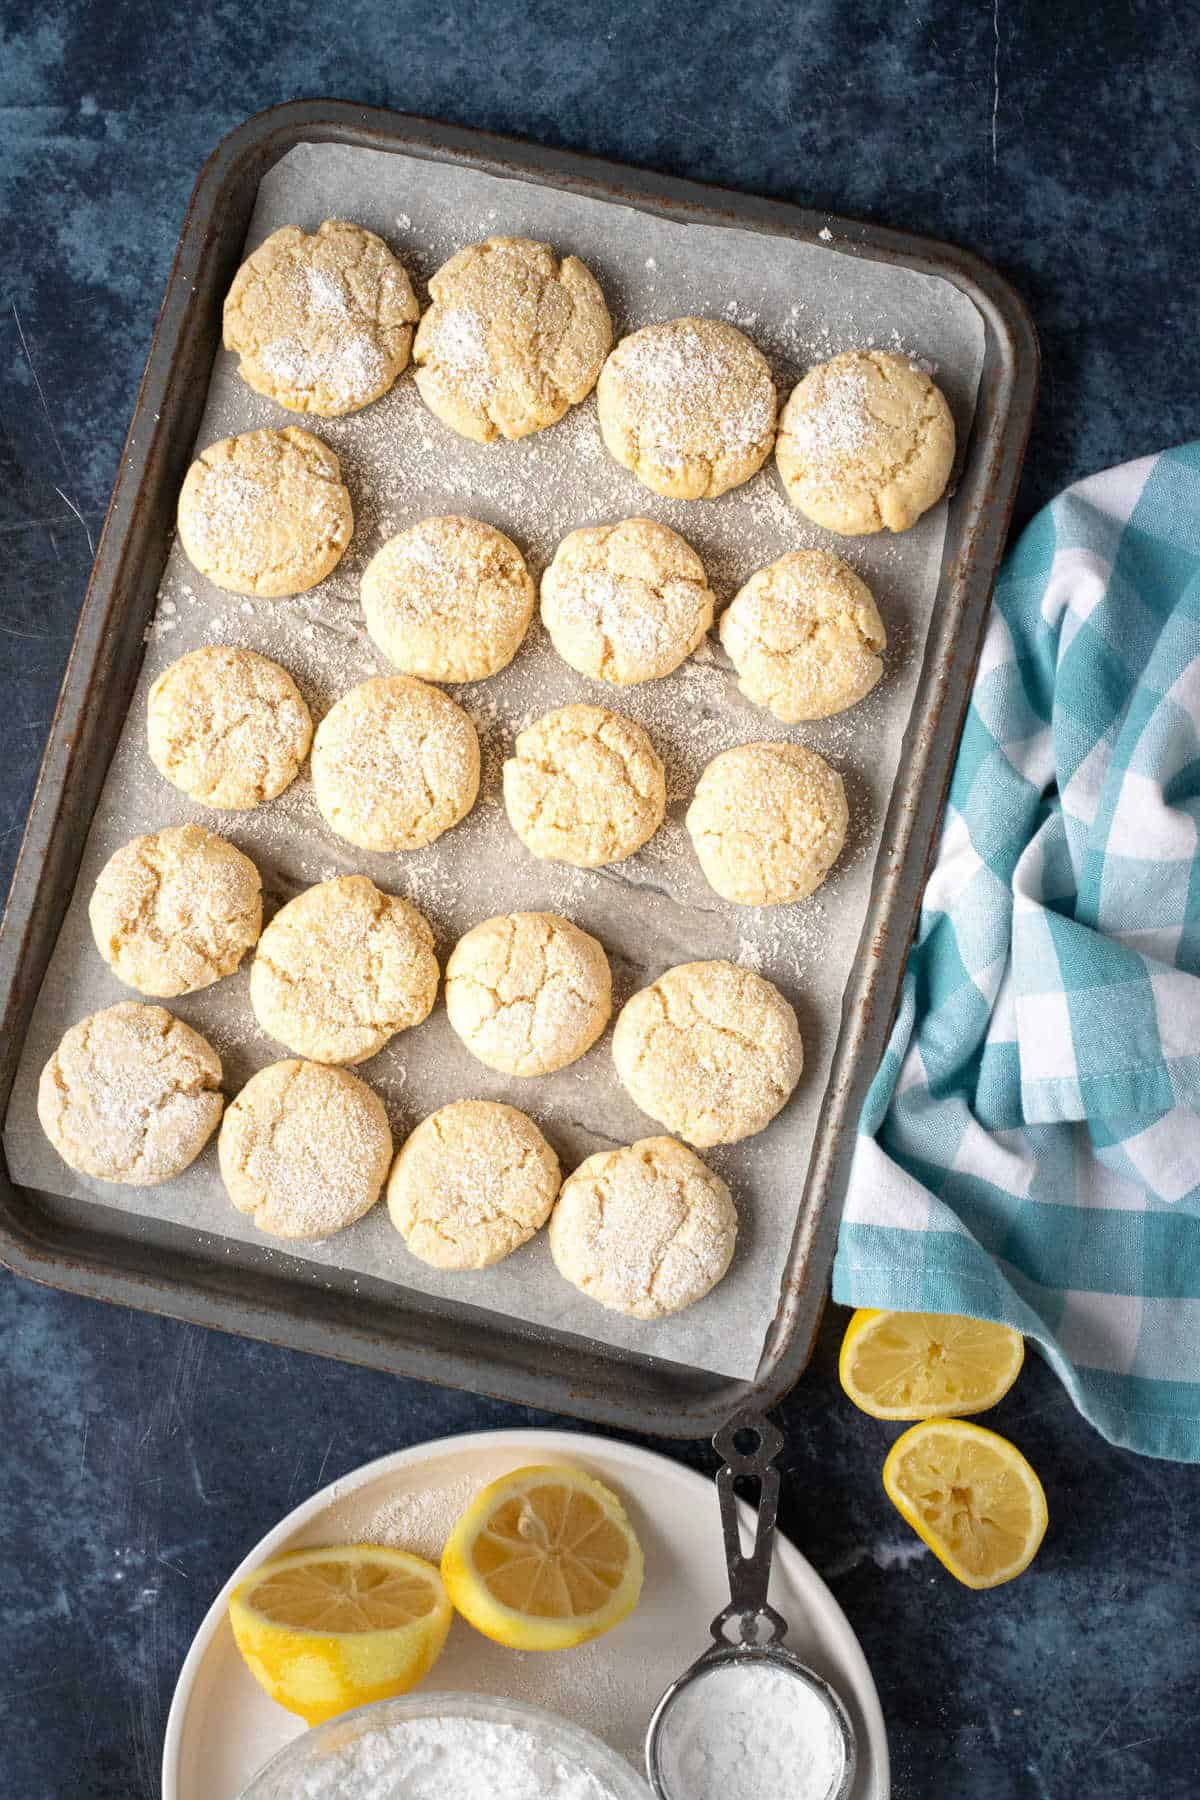 A tray of baked lemon biscuits.